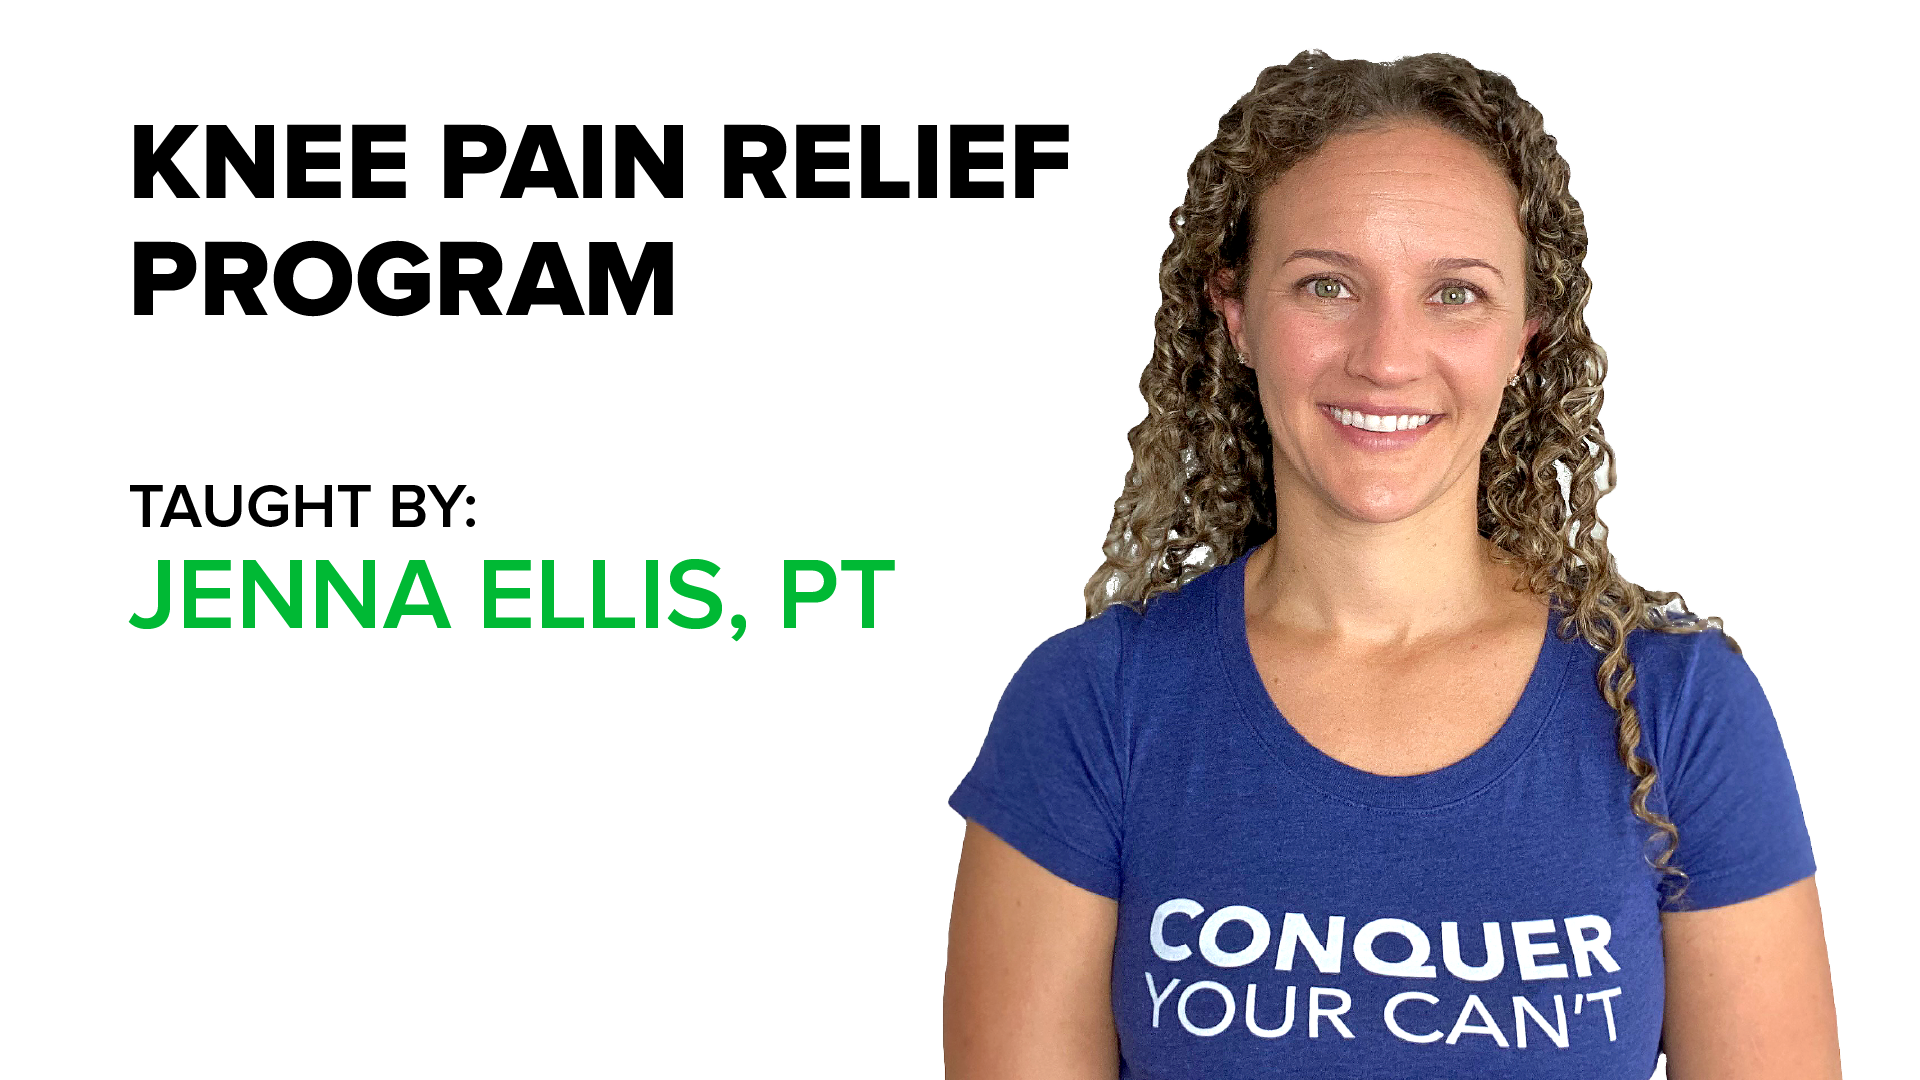 Primal 7 Knee Pain Program, Jenna Ellis